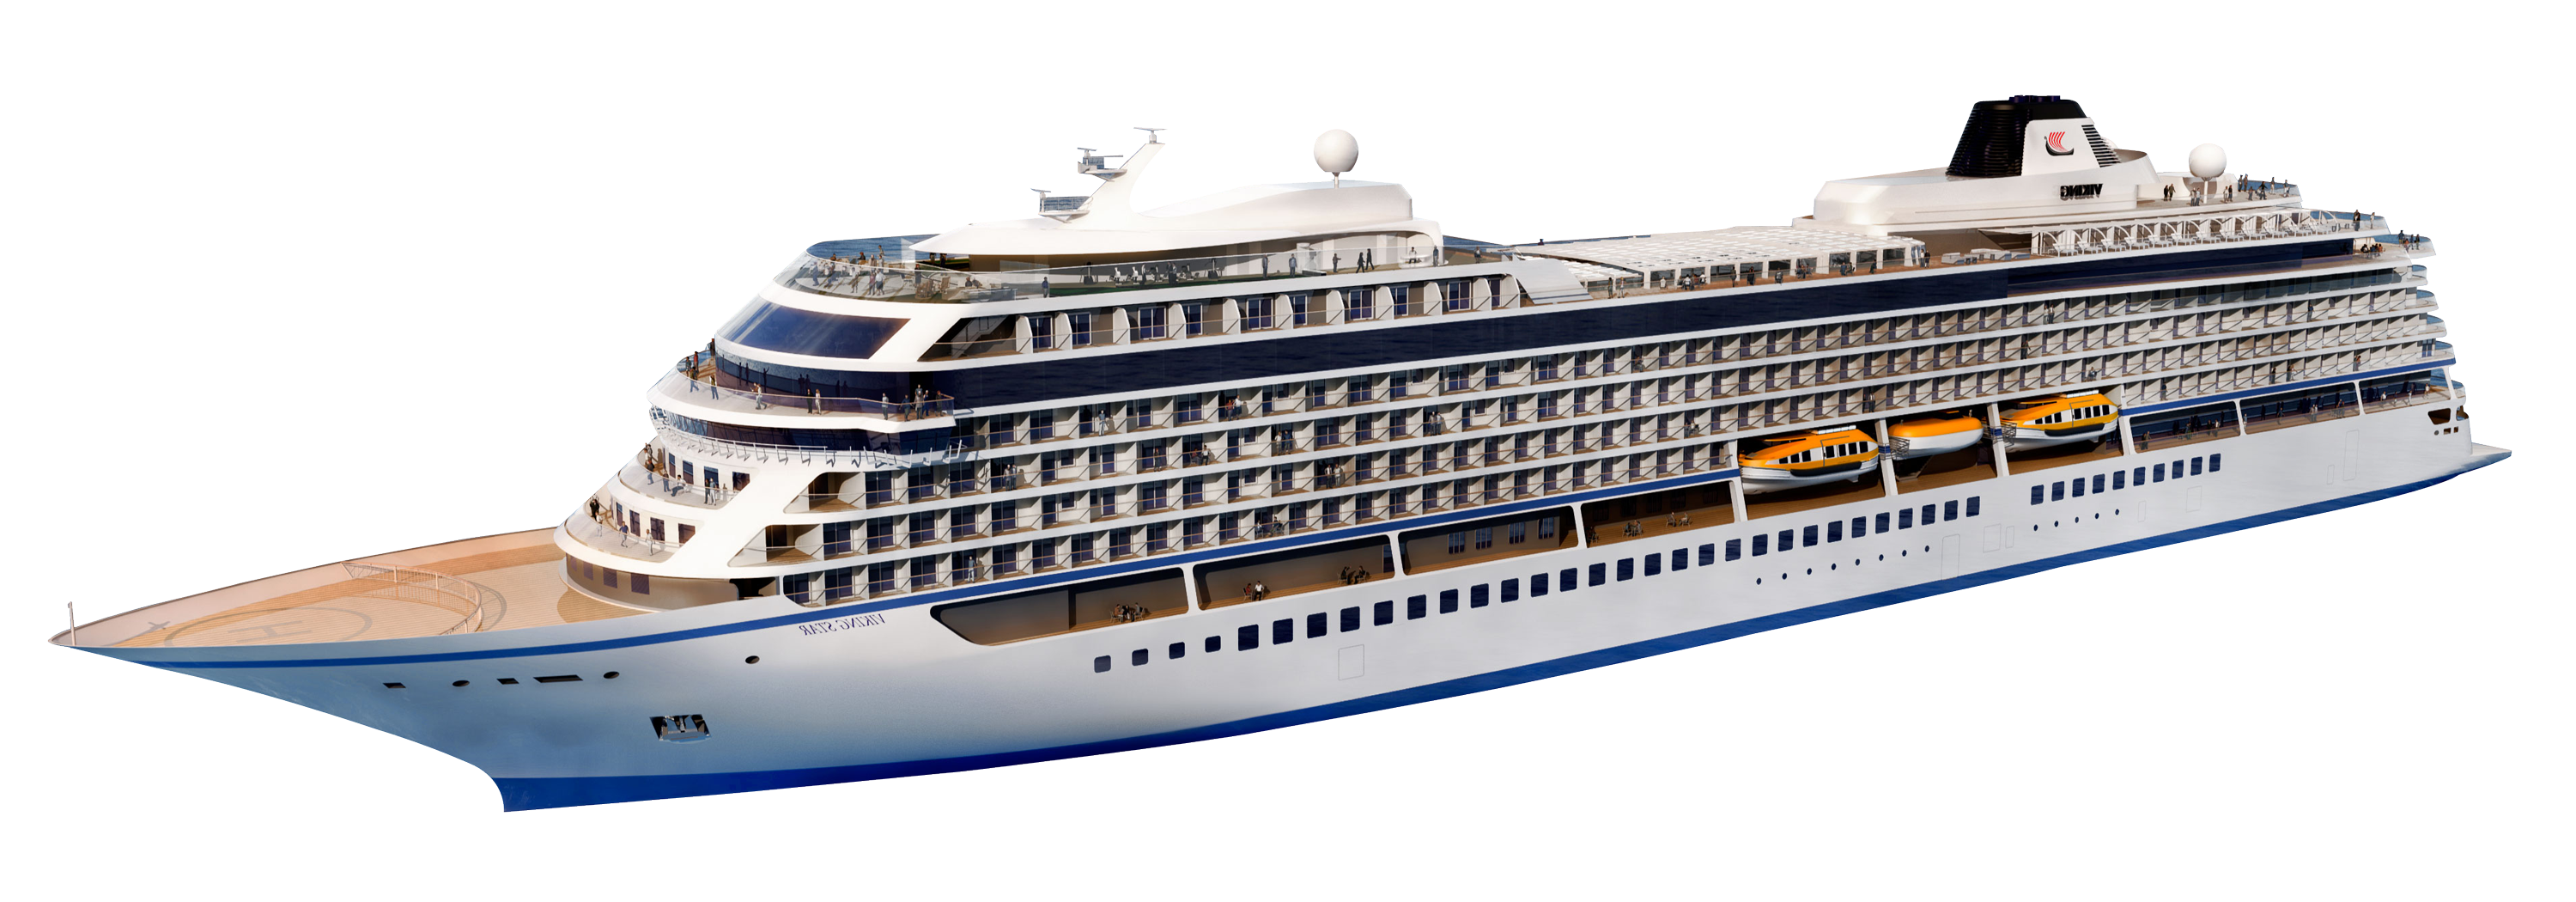 png free download Png image purepng free. Yacht clipart passenger ship